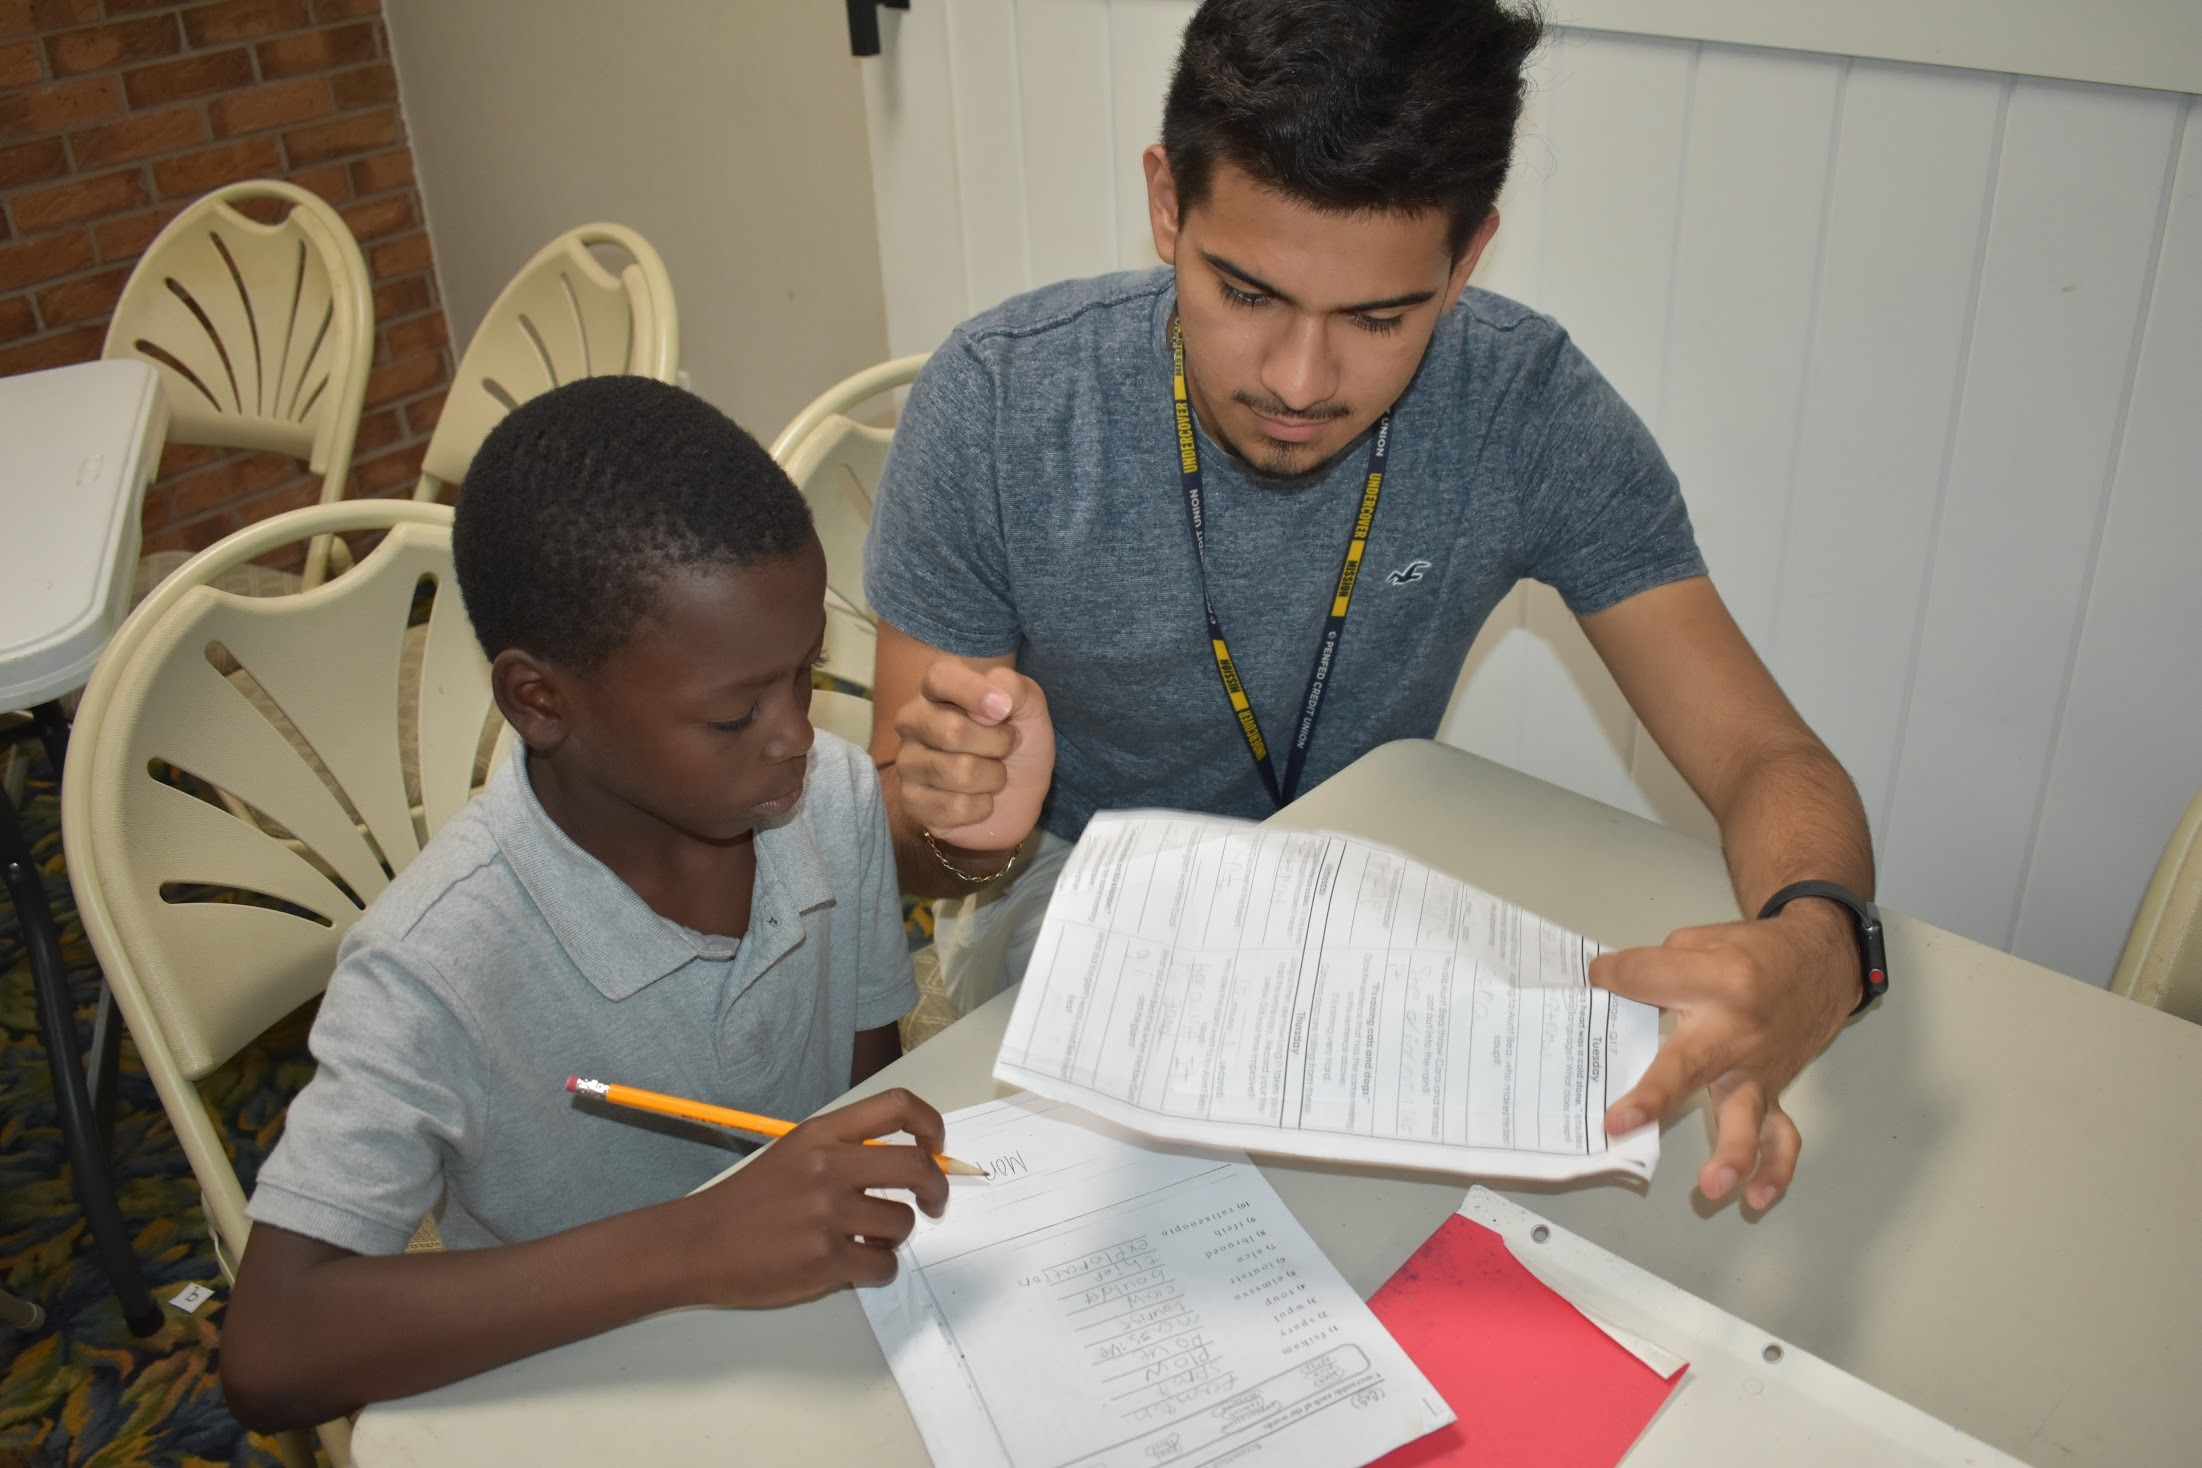 A First Serve Pal mentor works with mentee on homework